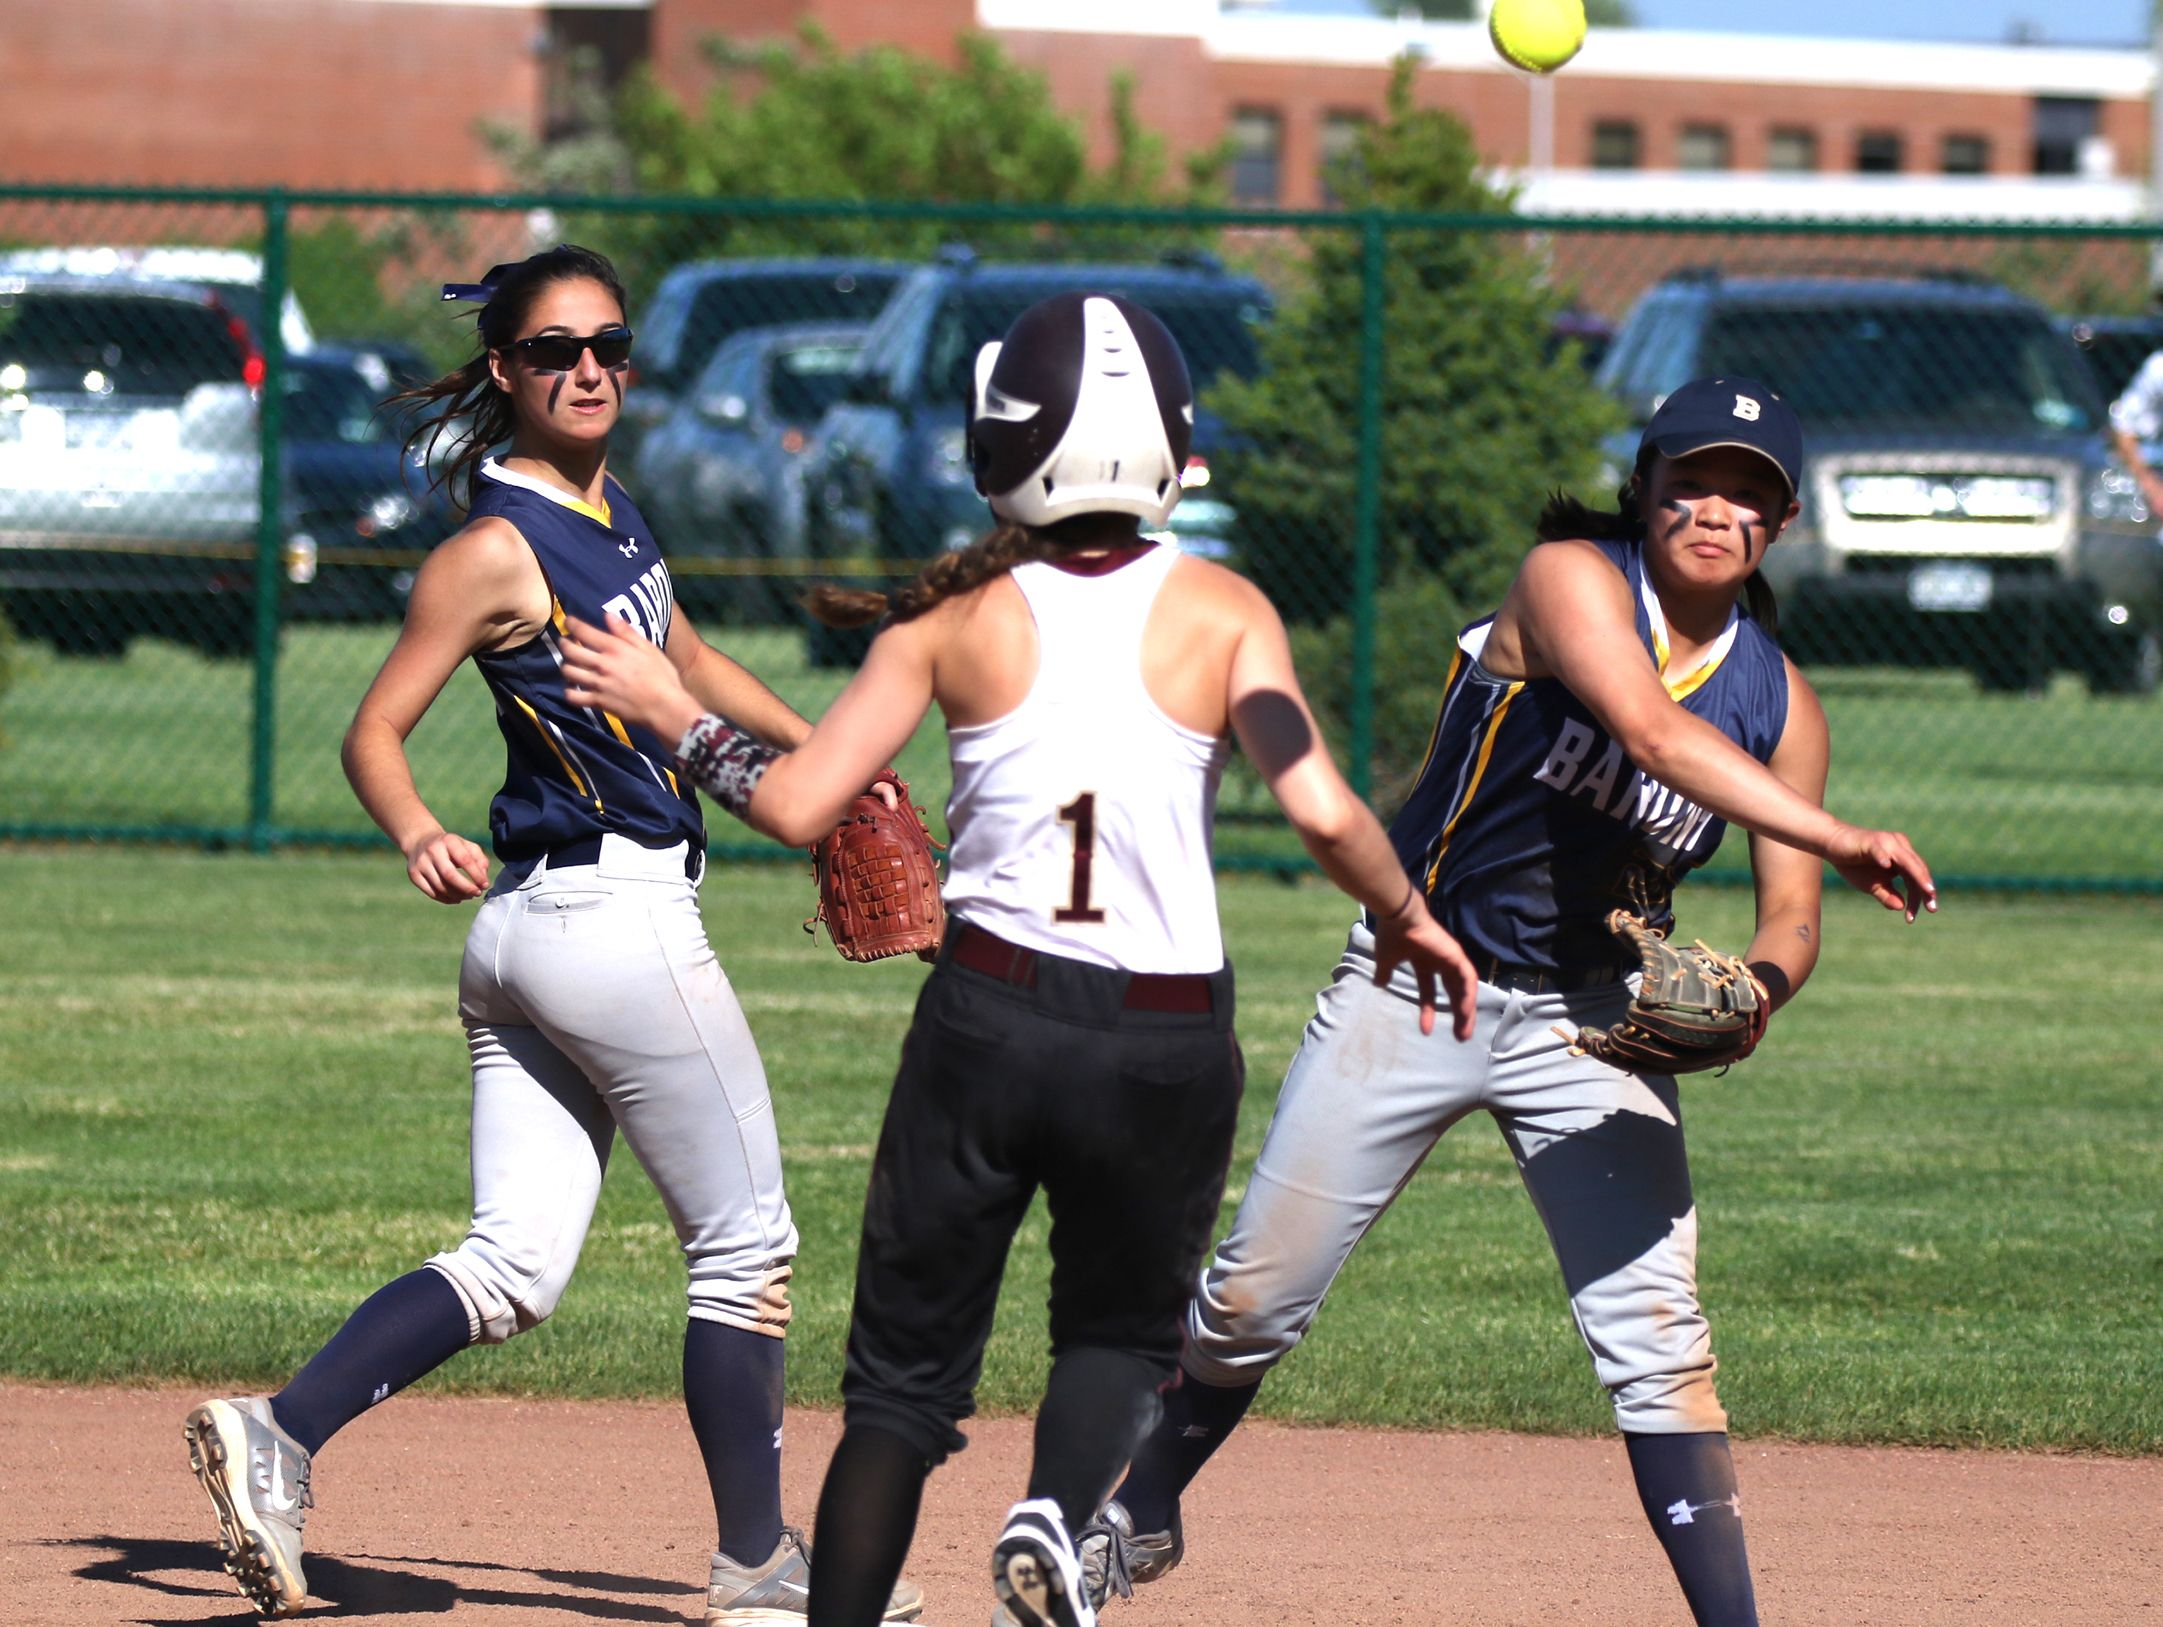 Brighton's Eliza Demers gets Pittsford Mendon's Leah Montione out at second and throws to first to complete a double play.